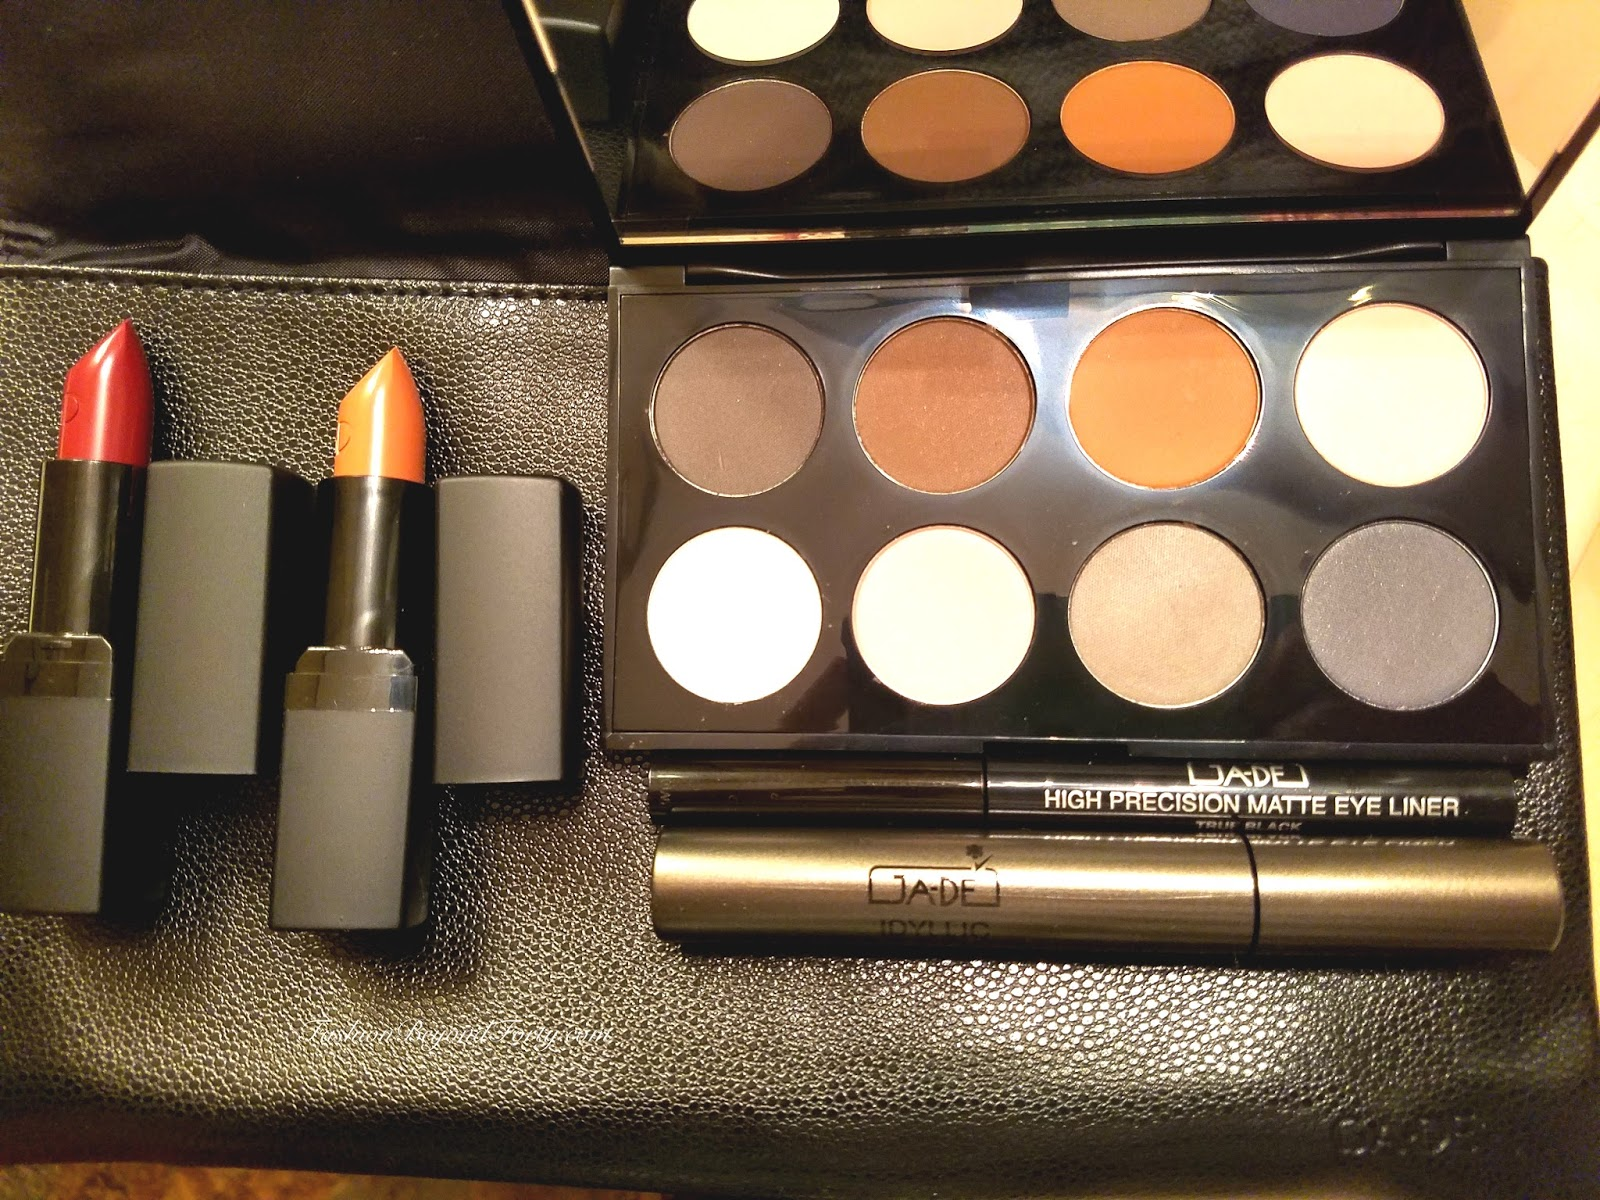 Beauty Focus: My Experience With GA-DE Cosmetics, Beauty Is In The Way You Feel + Discount Code